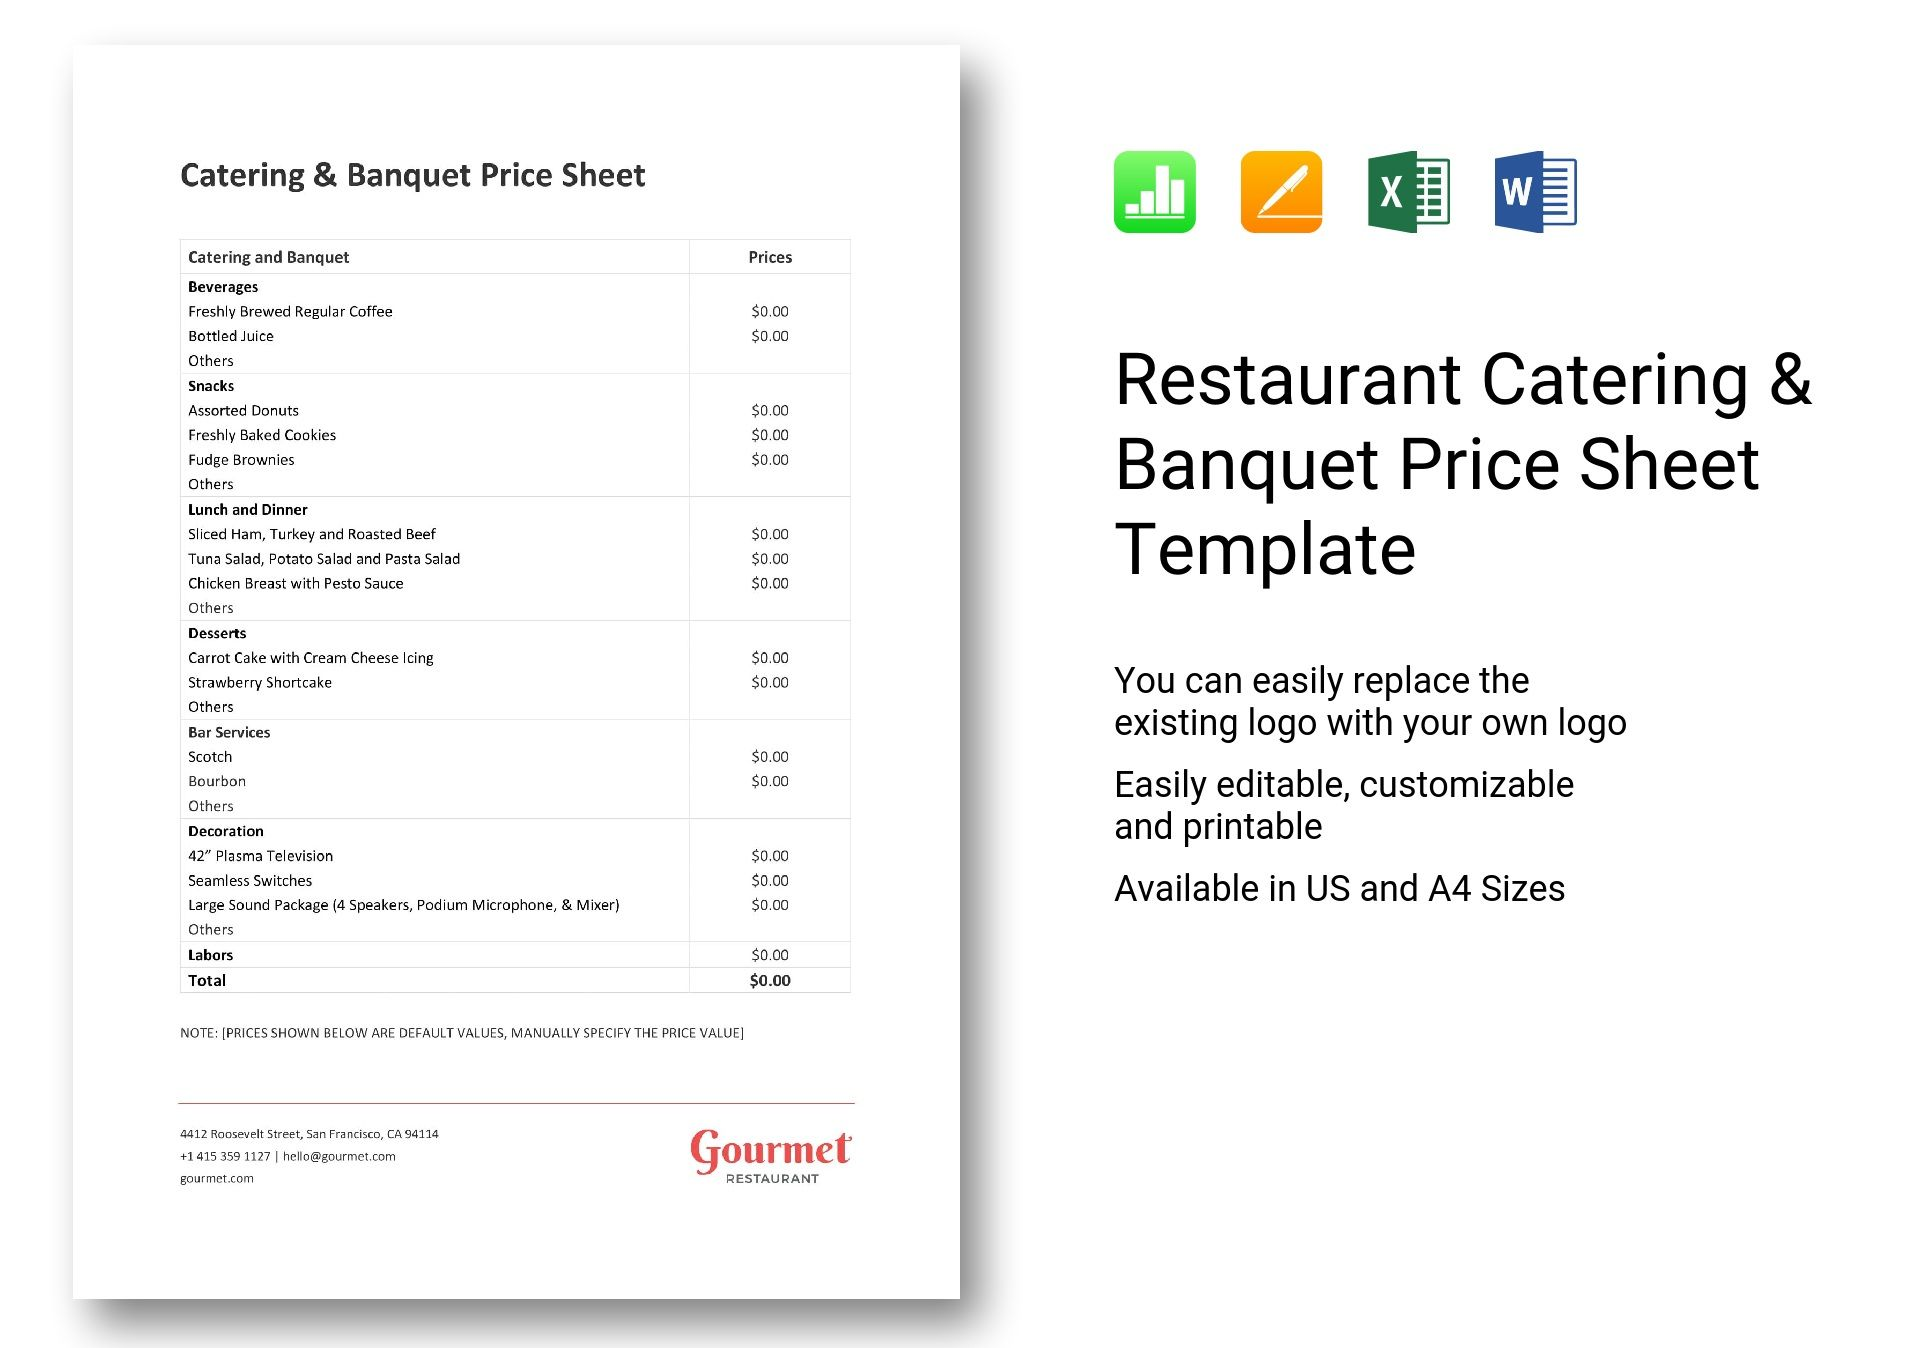 Restaurant Catering and Banquet Price Sheet